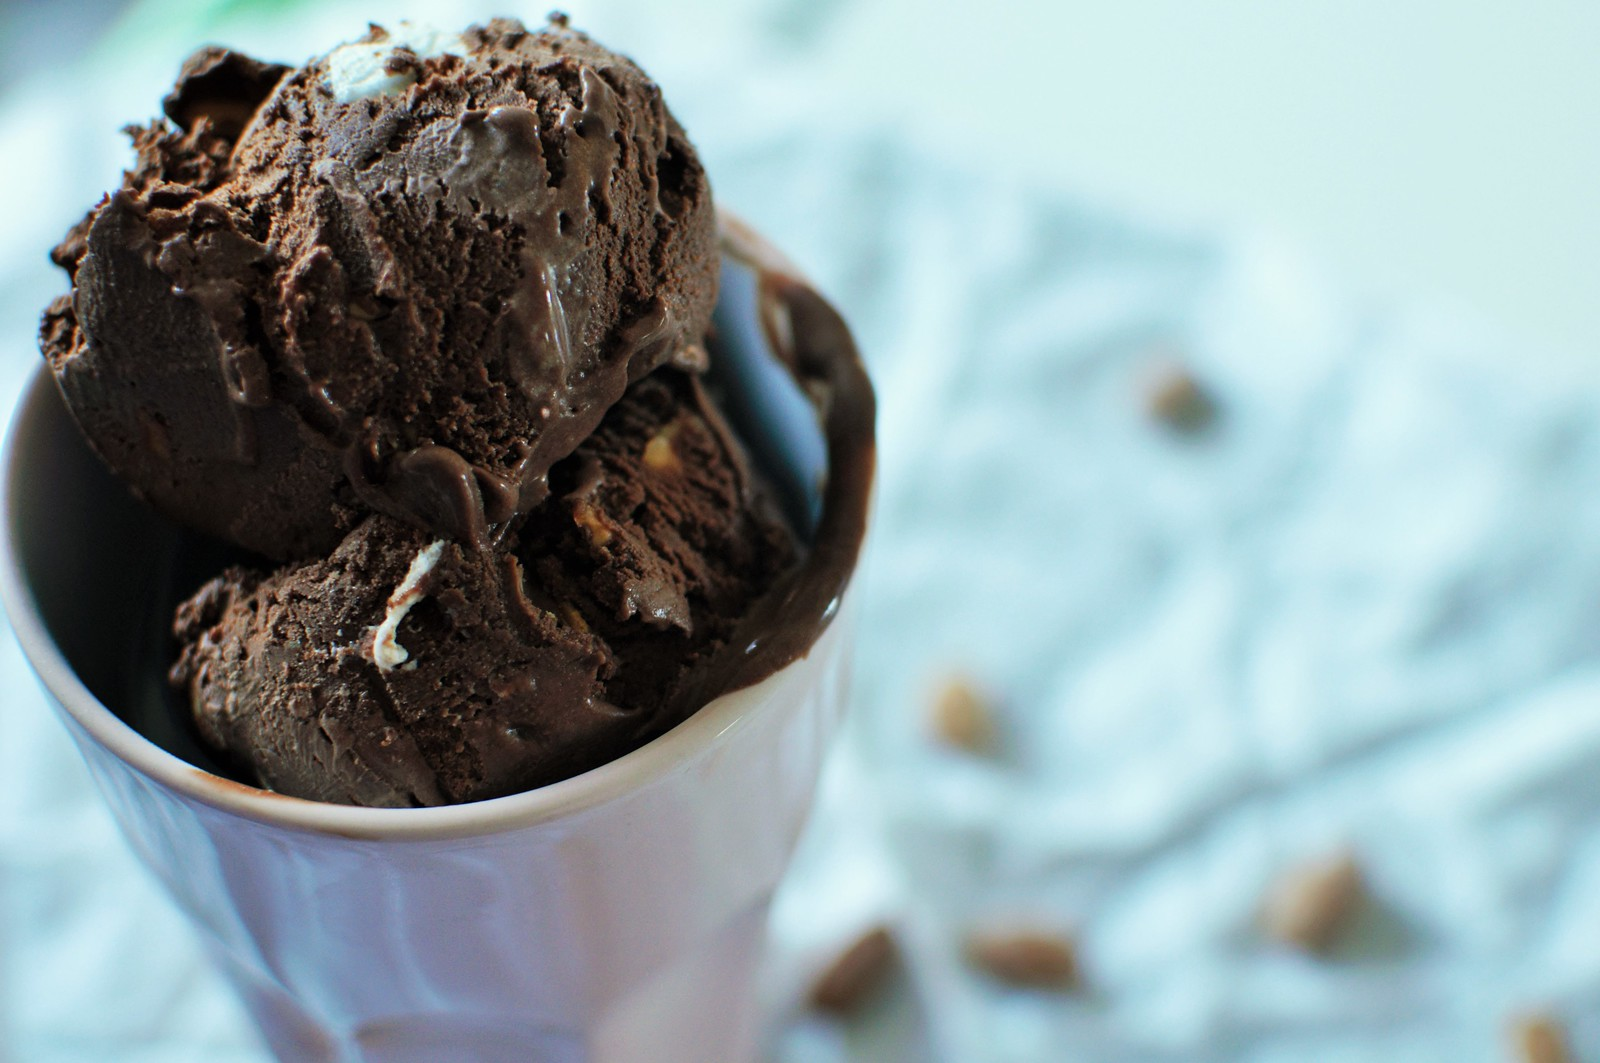 Rocky Road Ice Cream 1